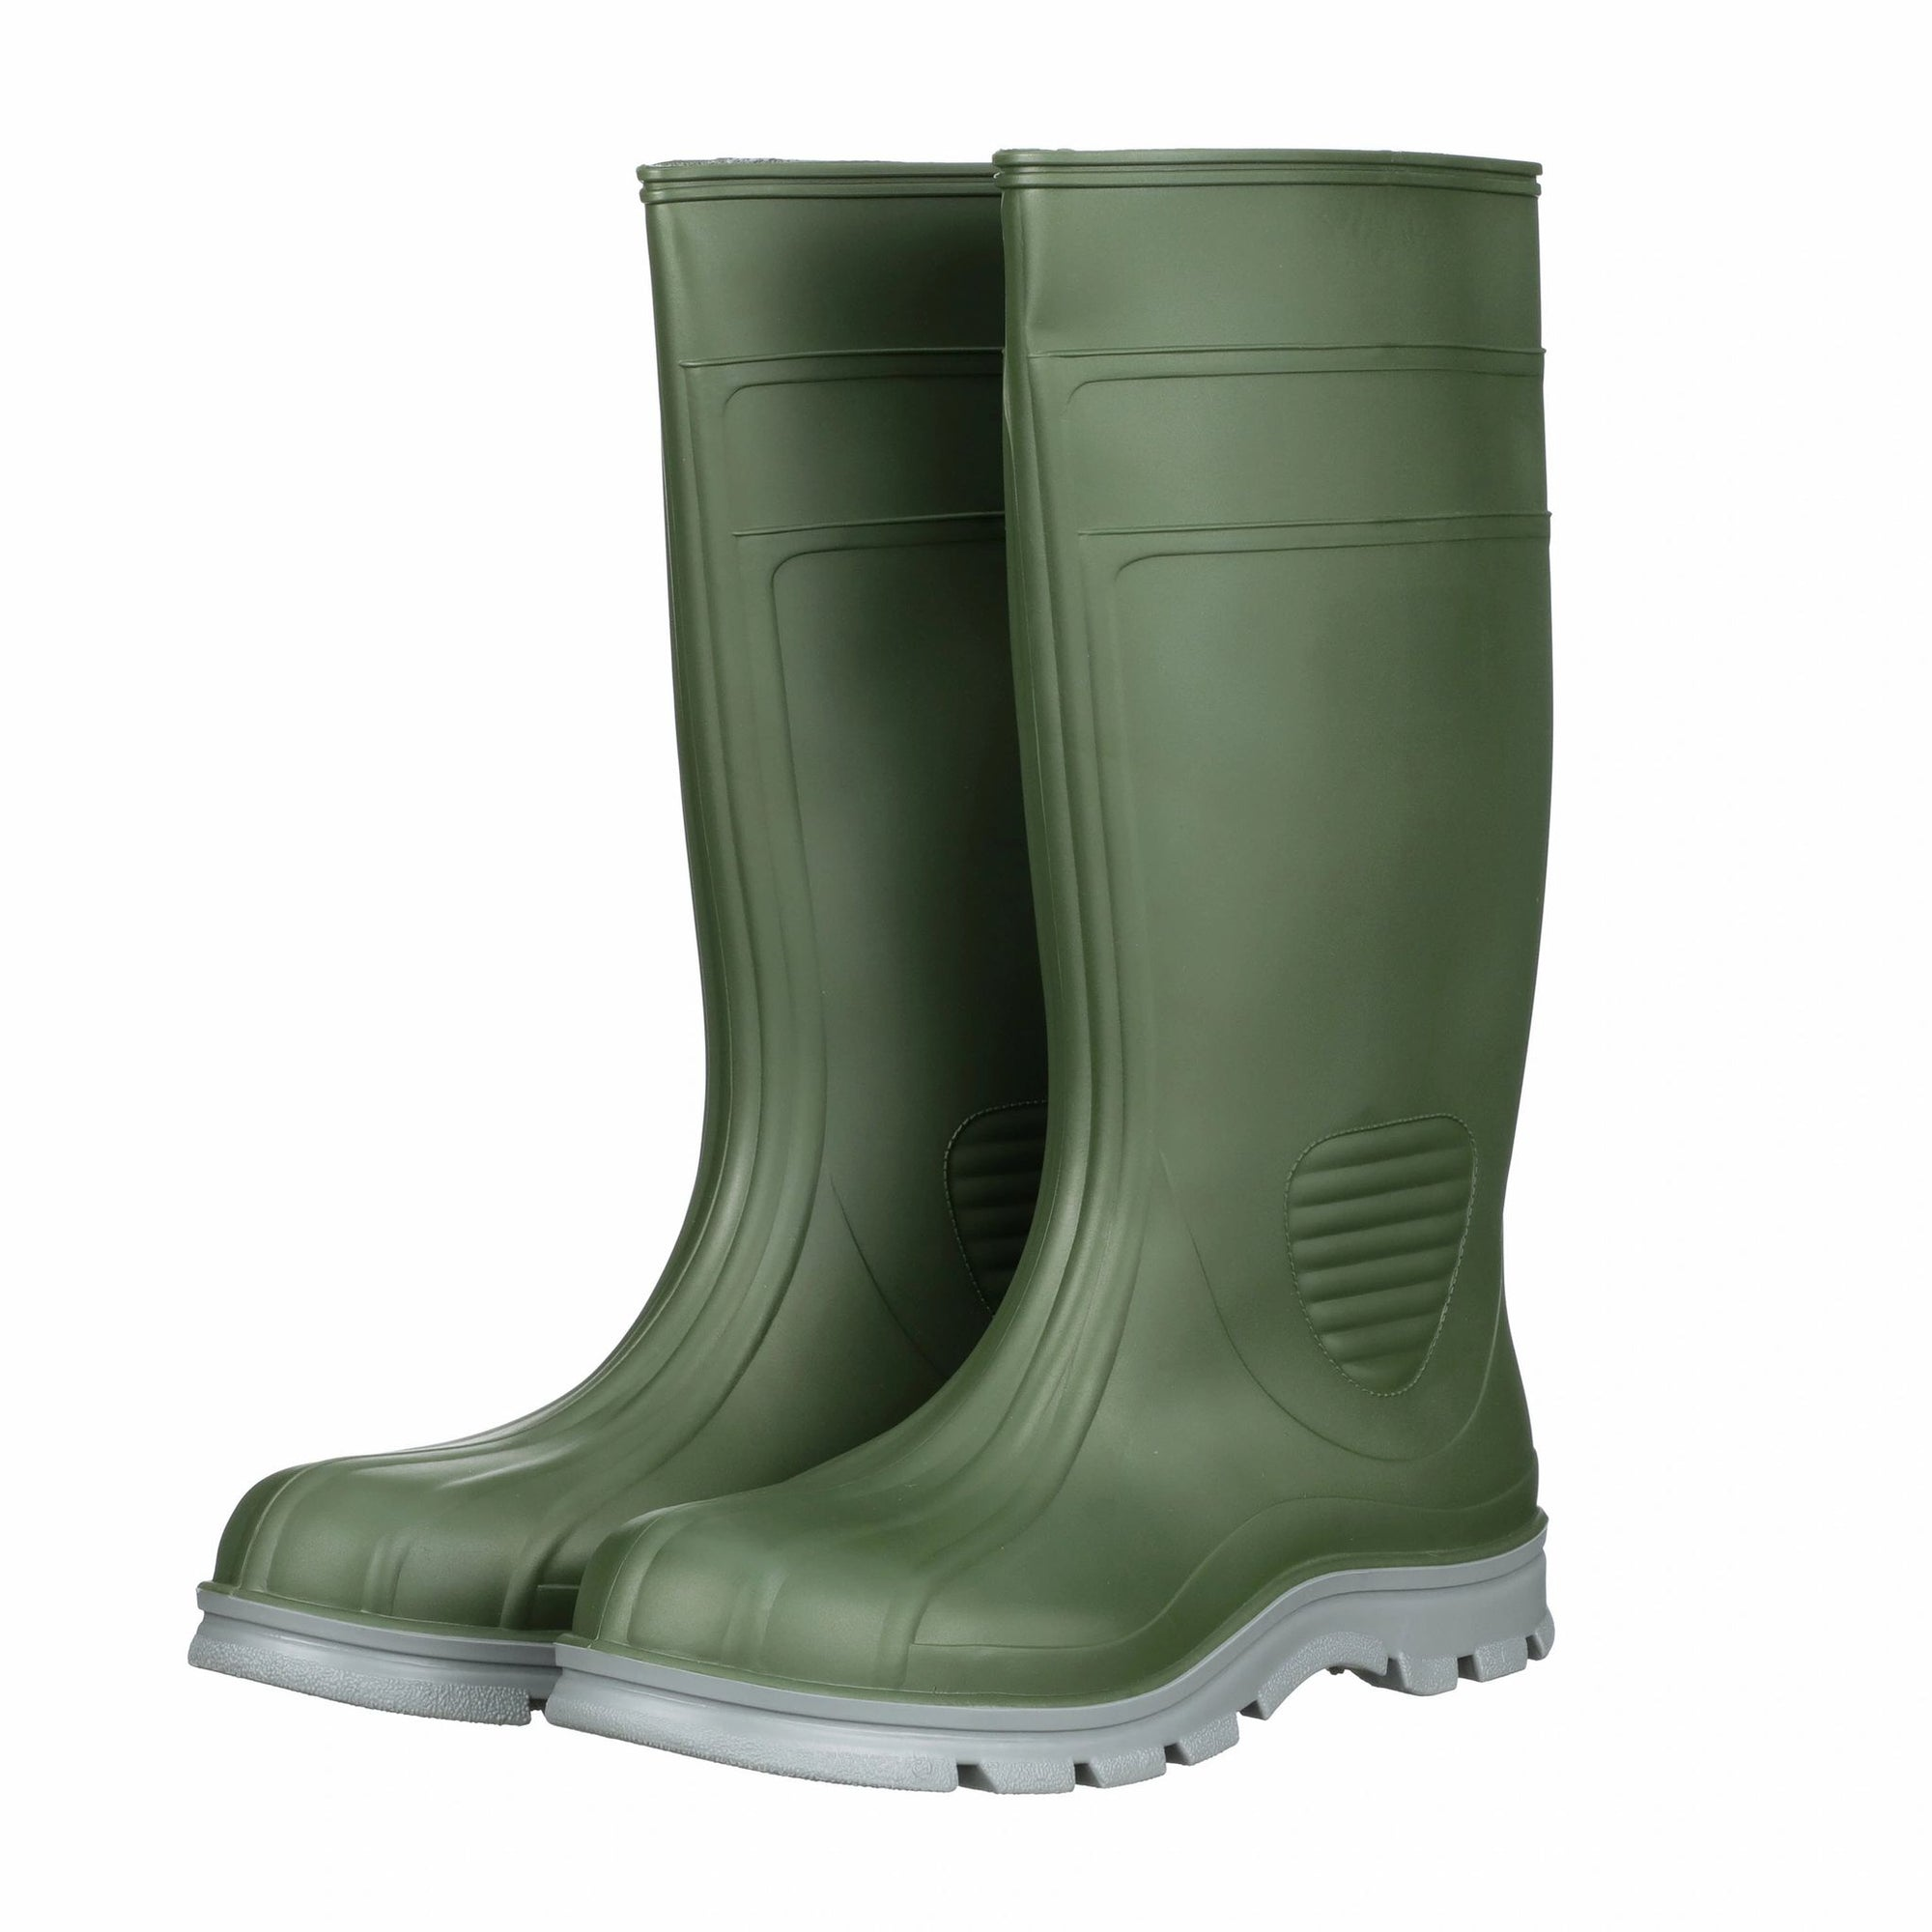 "WorkTuff 15"" Green Steel Toe Polymar Boot"